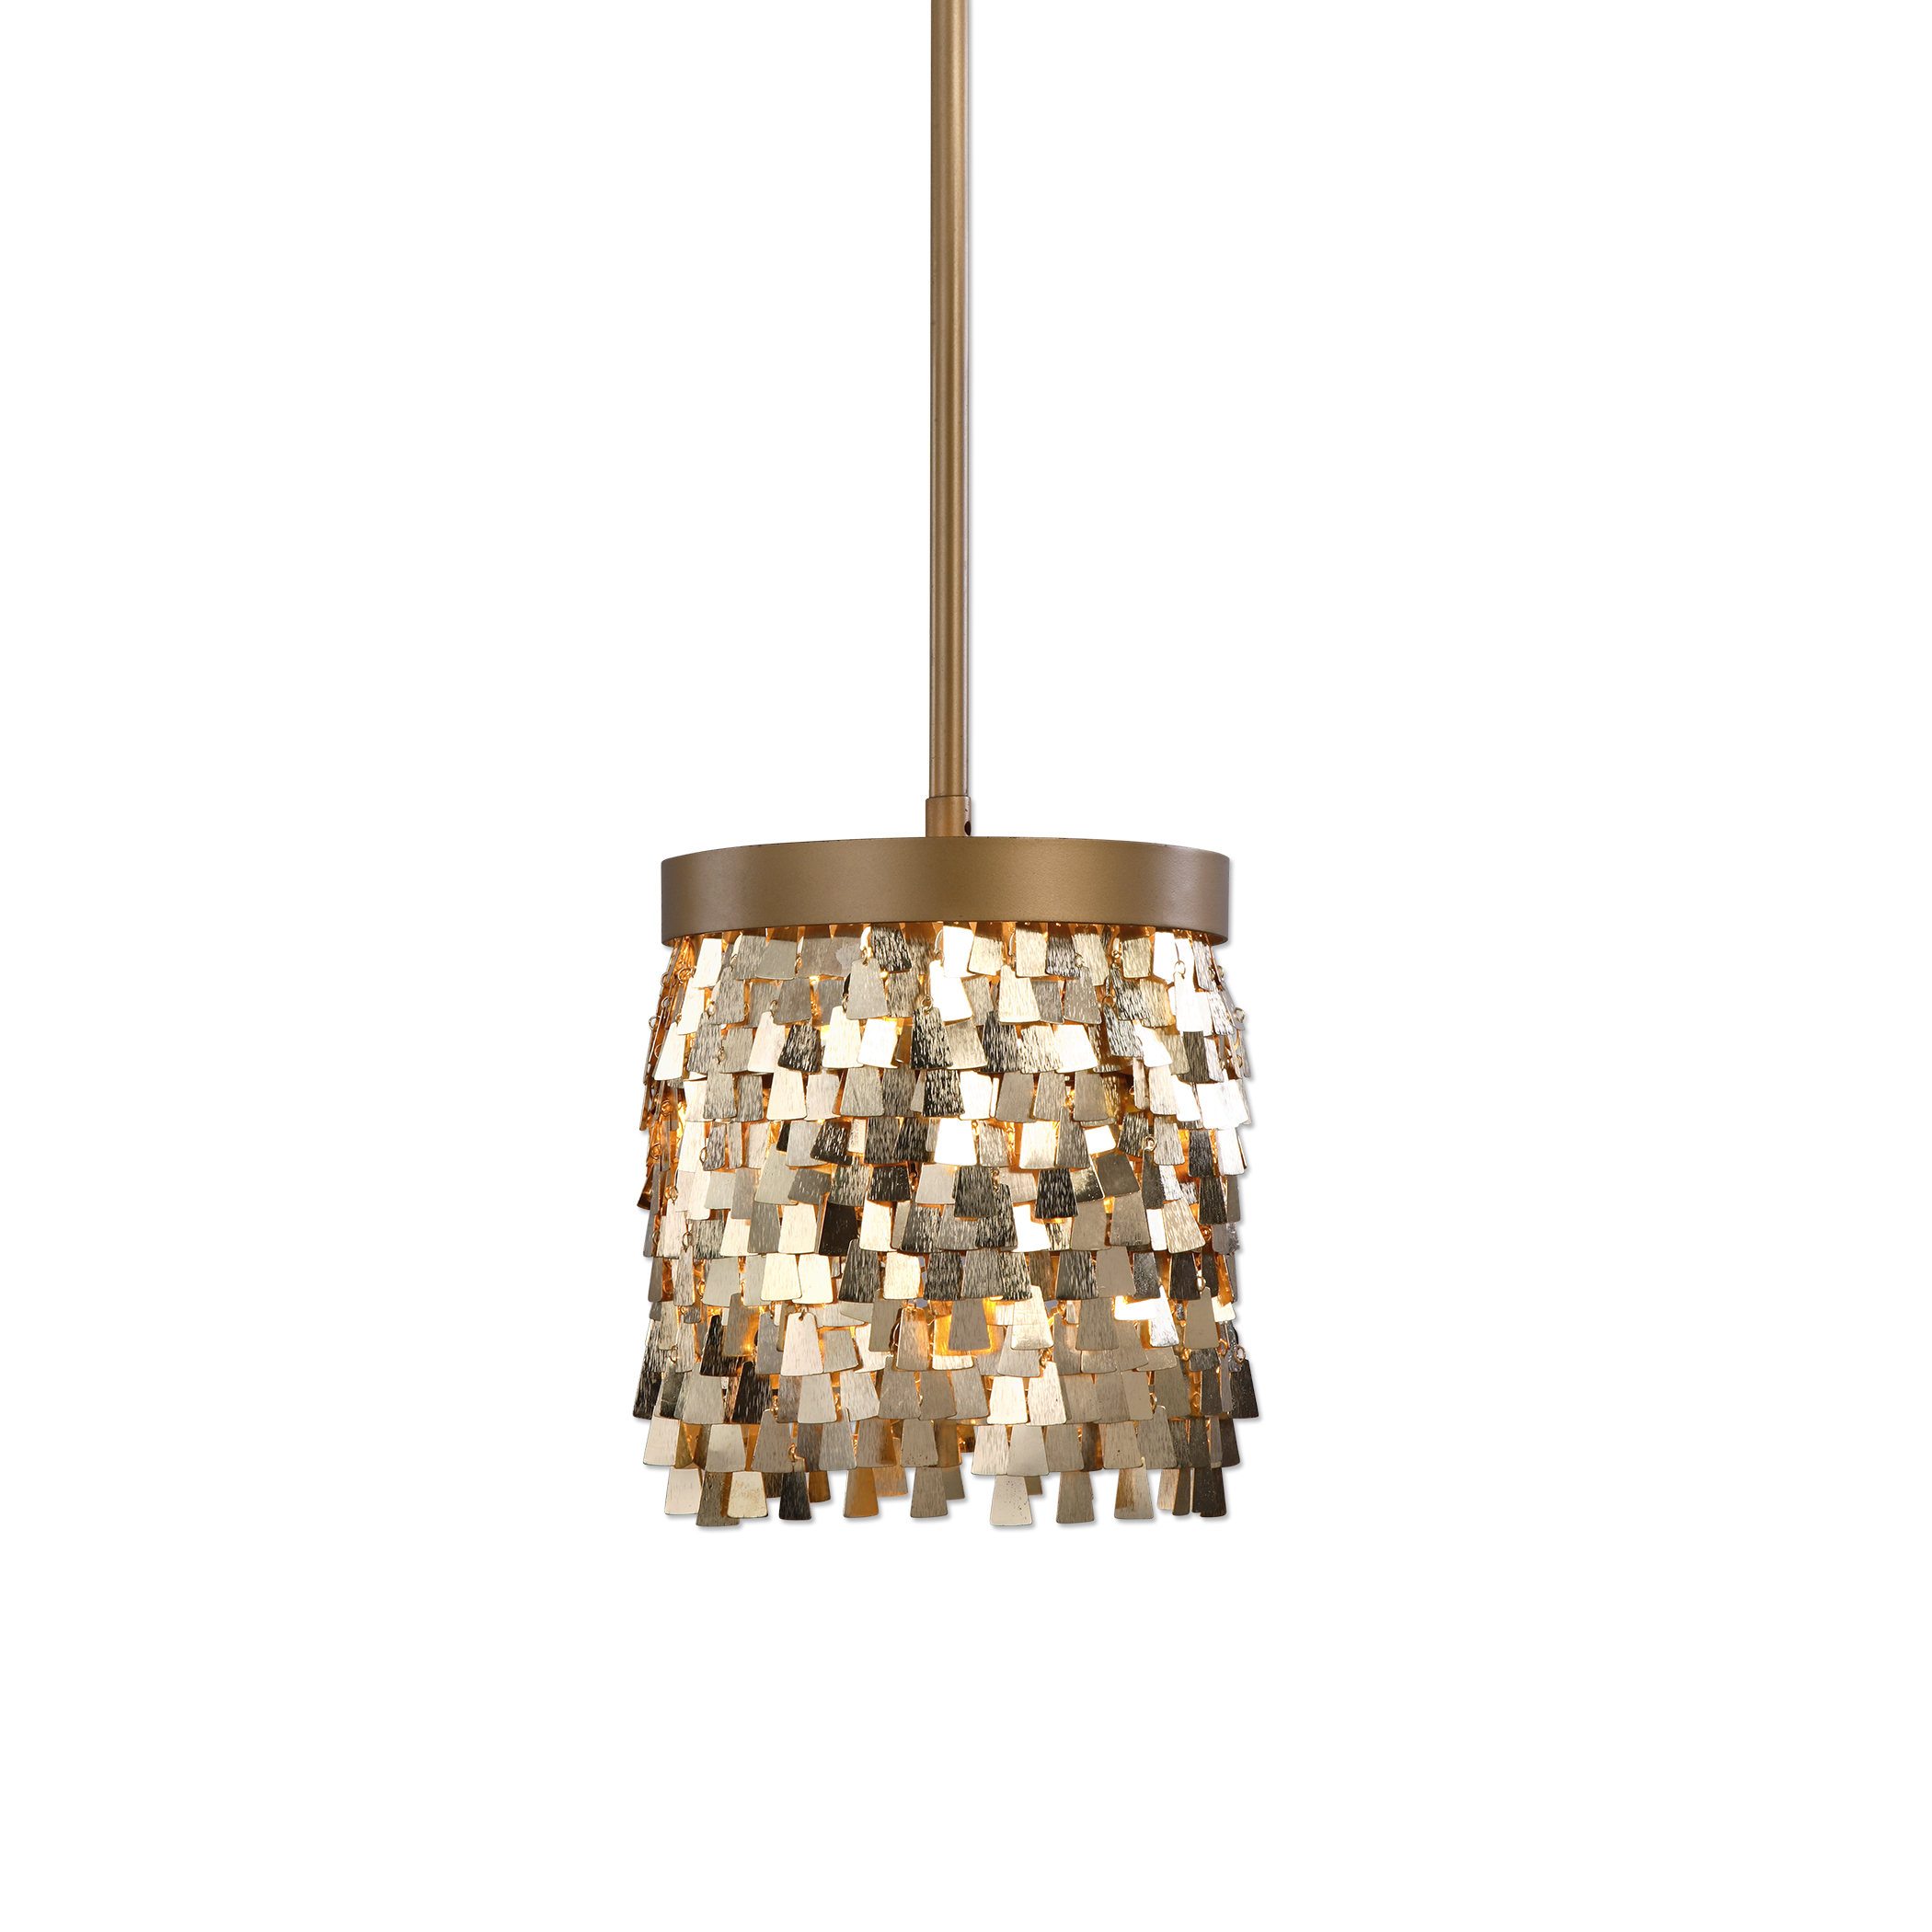 Uttermost Lighting Fixtures Tillie 1 Light Gold Mini Pendant - Item Number: 22077